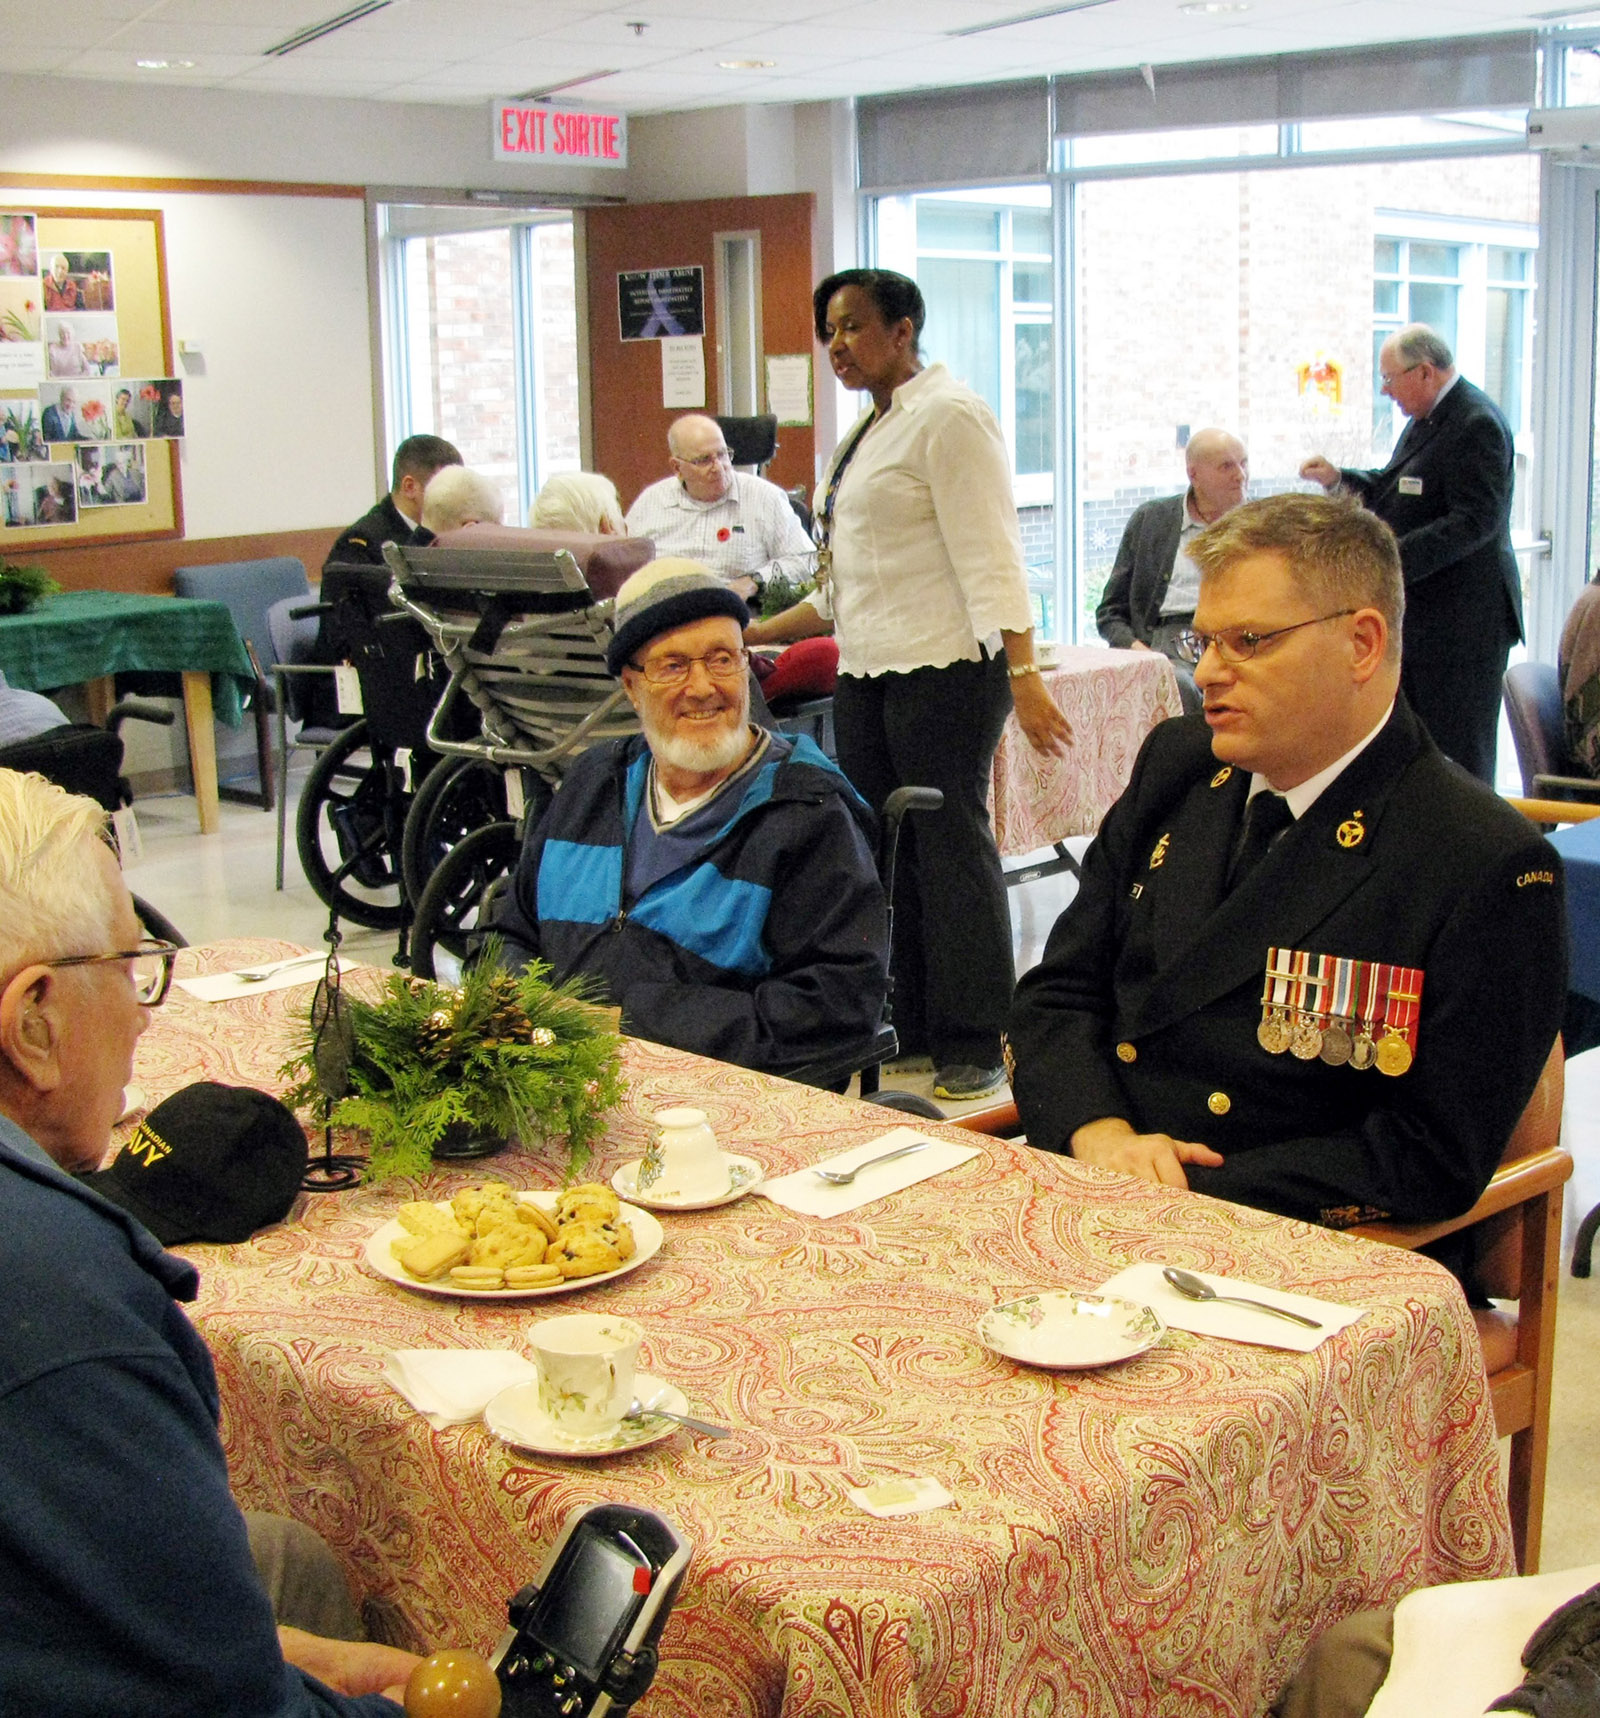 A crew member from HMCS Ottawa speaks with residents at the Perley and Rideau Veterans' Health Centre.